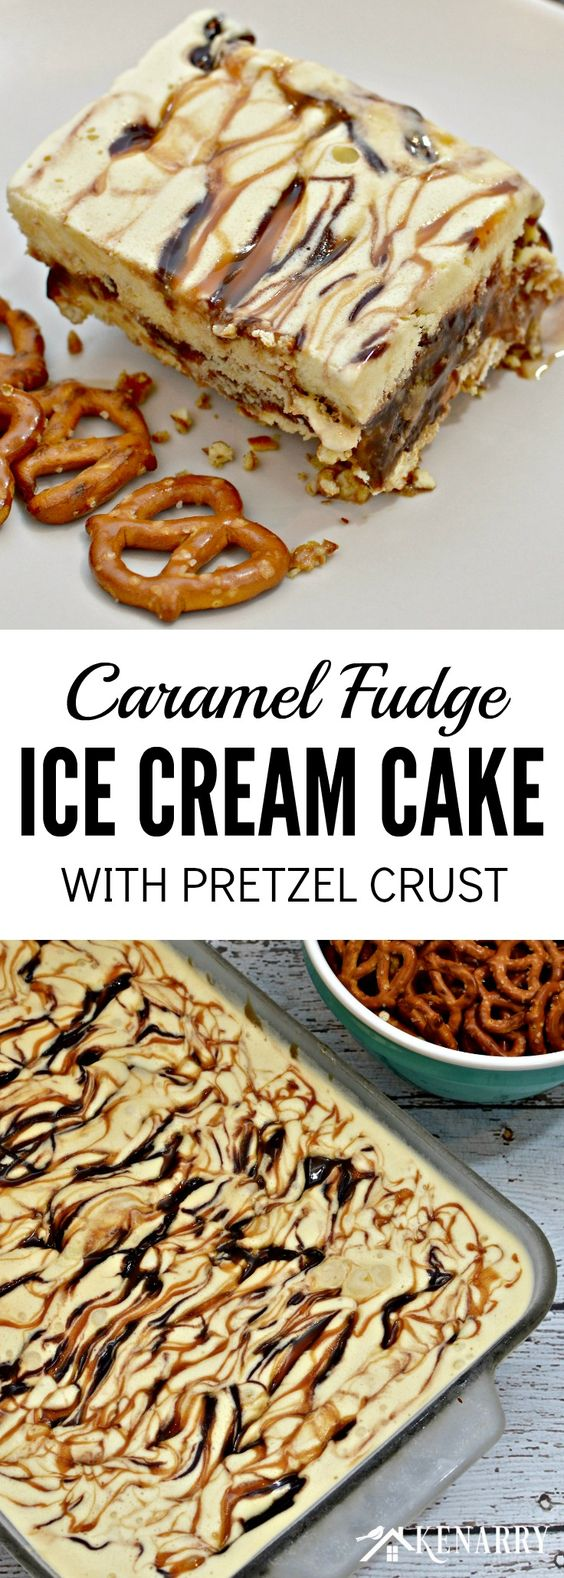 I can't wait to try this recipe idea for Caramel Fudge Ice Cream Cake with a pretzel crust! It looks like a delicious chocolate dessert for a hot summer day or a party with friends.